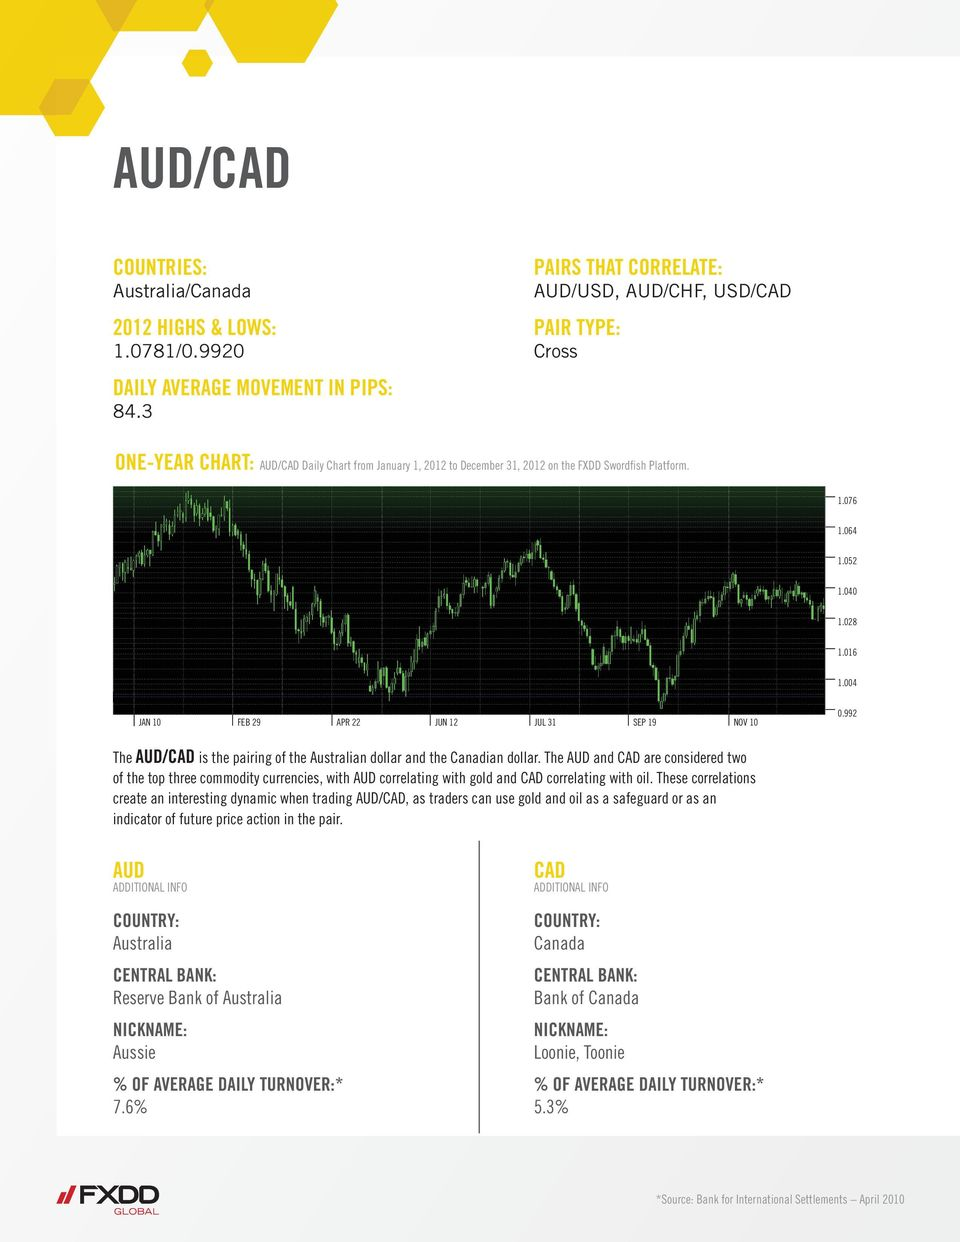 The AUD and CAD are considered two of the top three commodity currencies, with AUD correlating with gold and CAD correlating with oil.